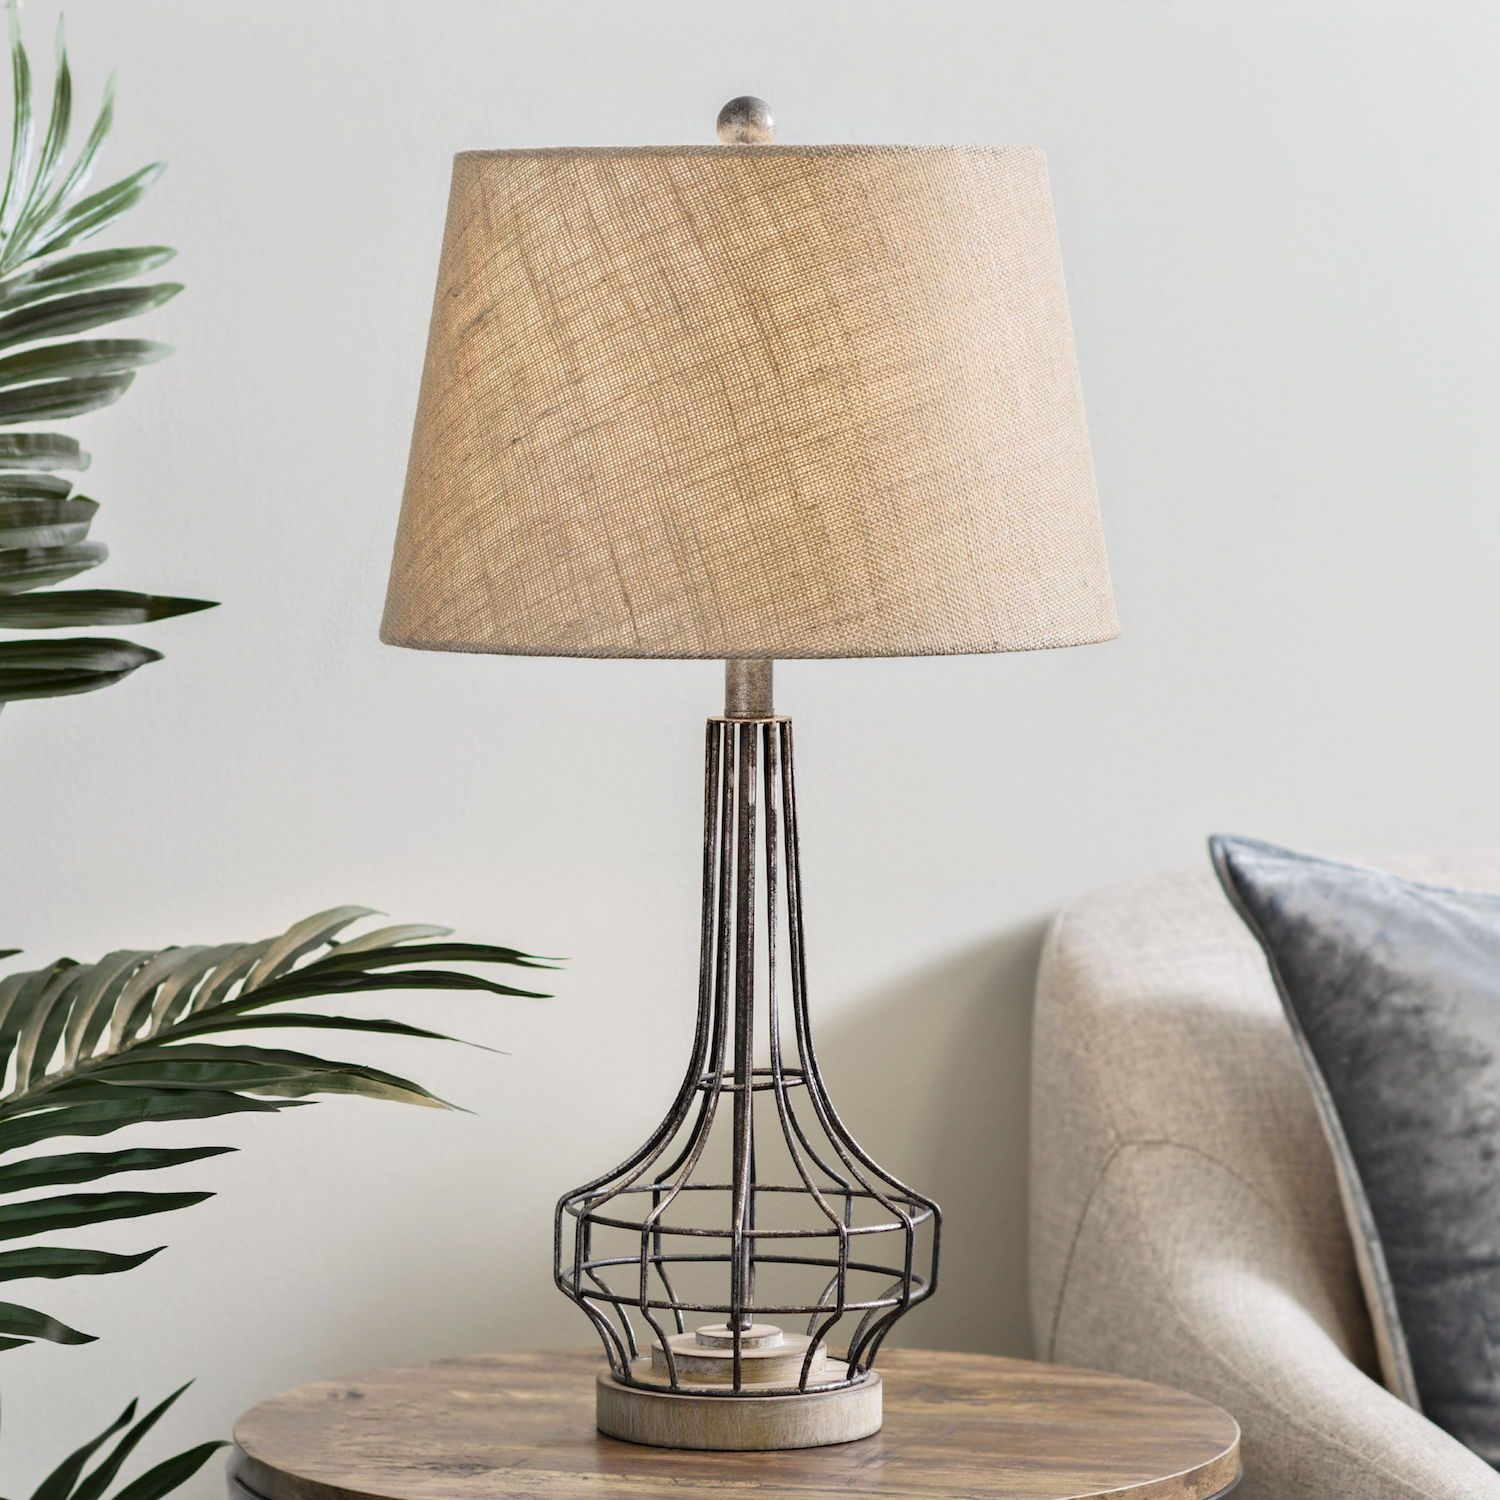 Gus Washed Metal Table Lamp Rustic table lamps